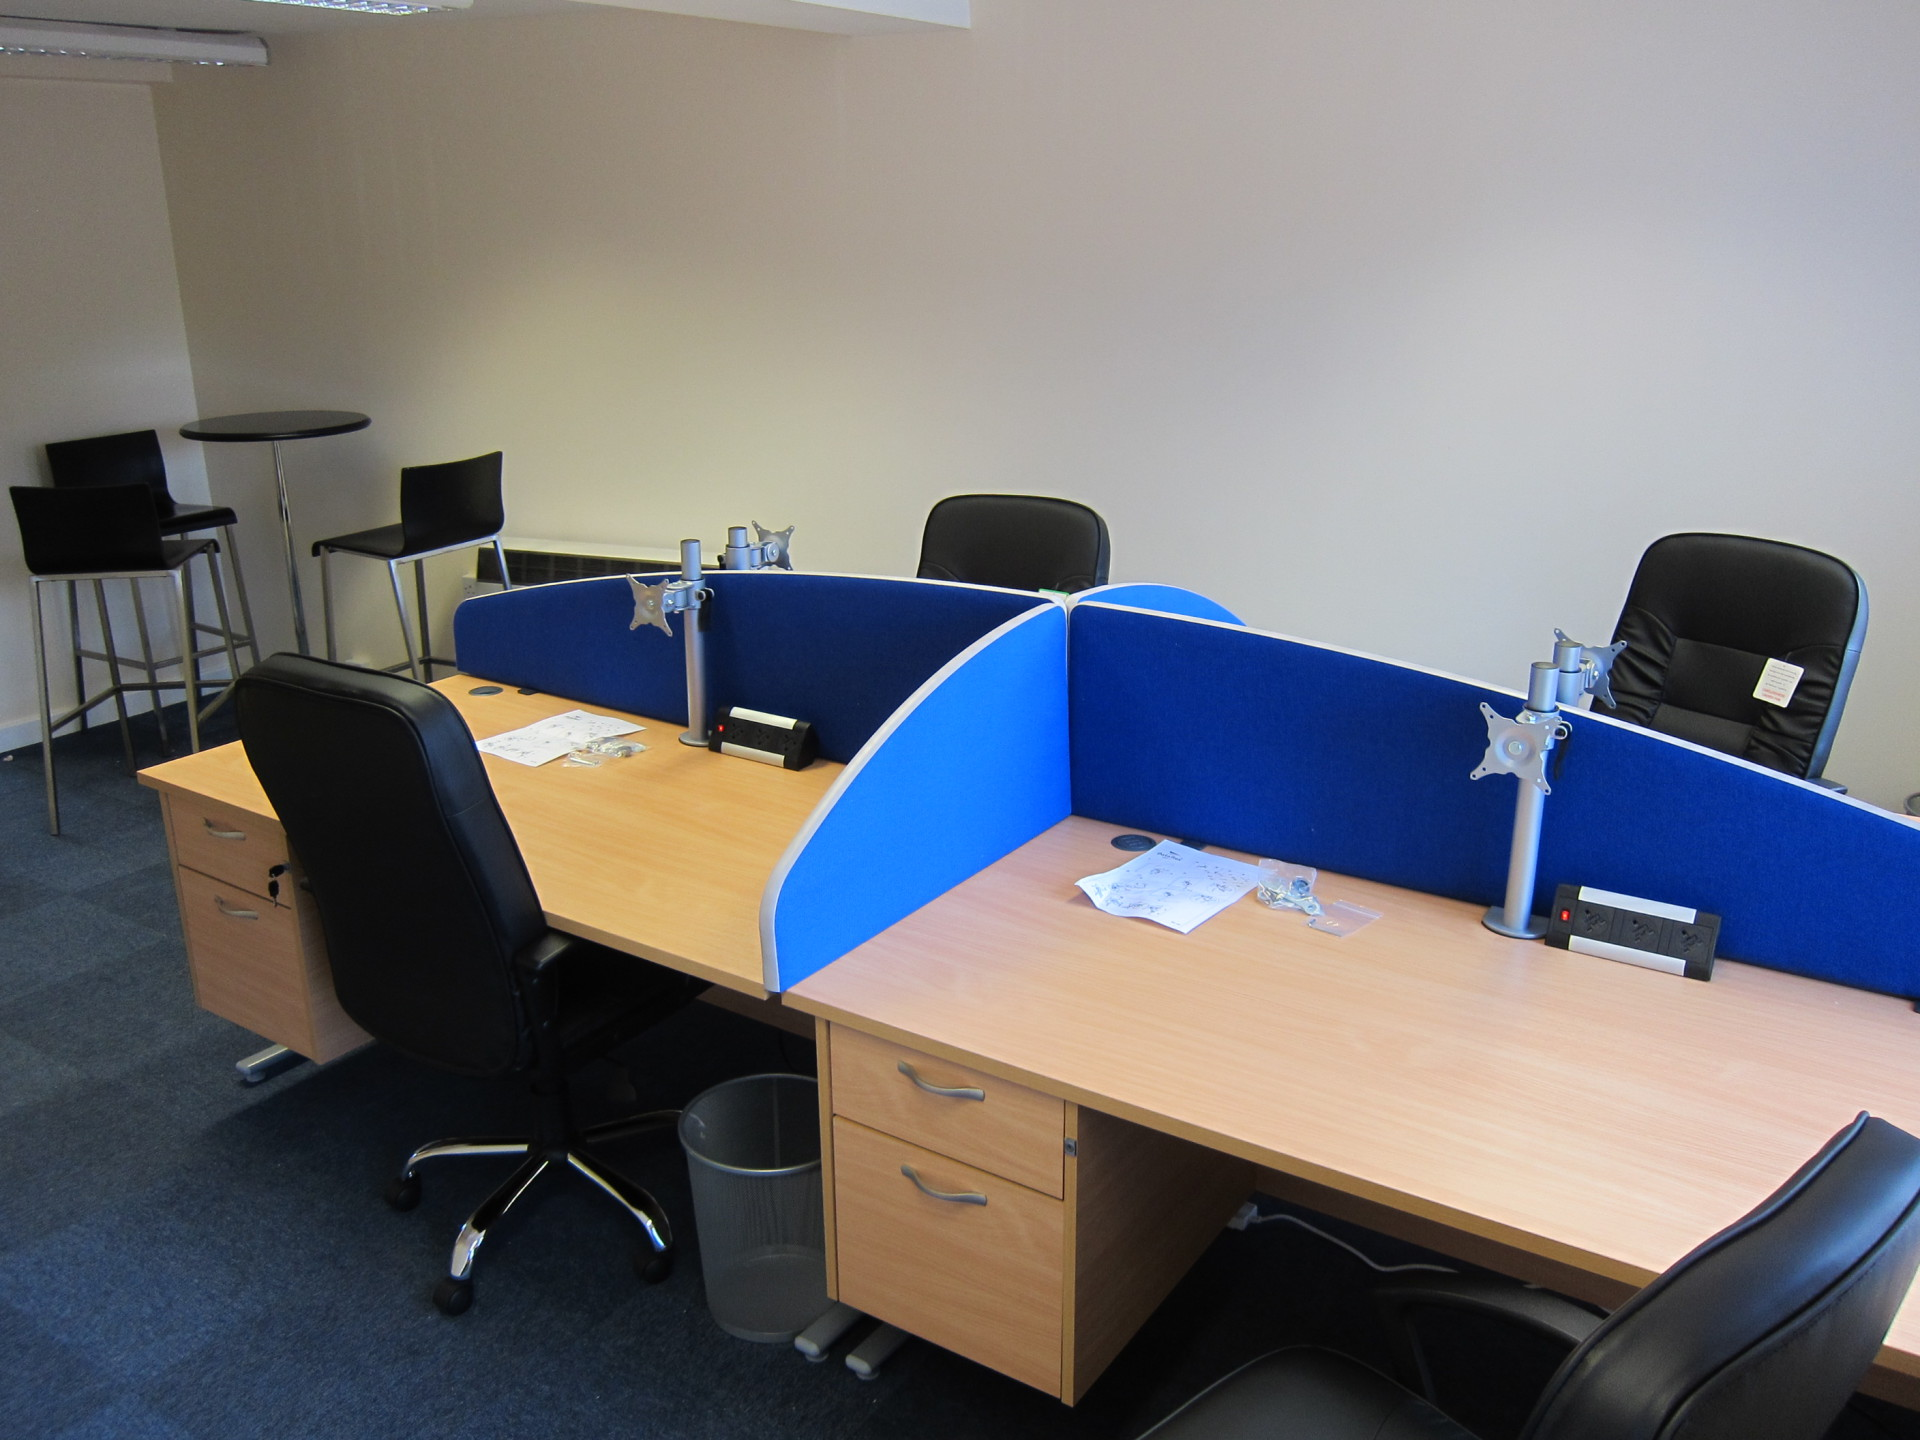 Workstations in shared office